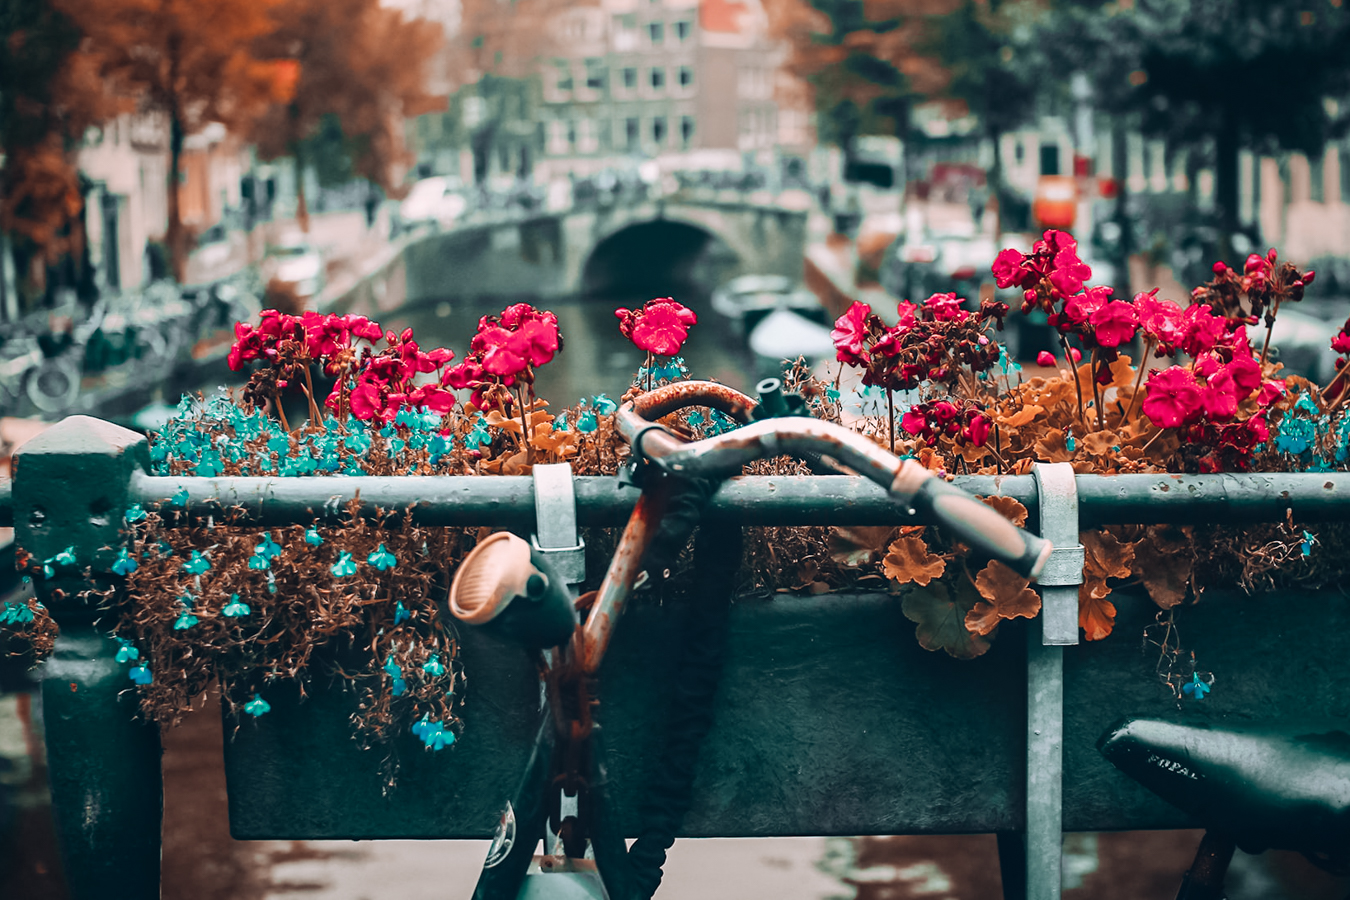 Bike and flowers in Amsterdam